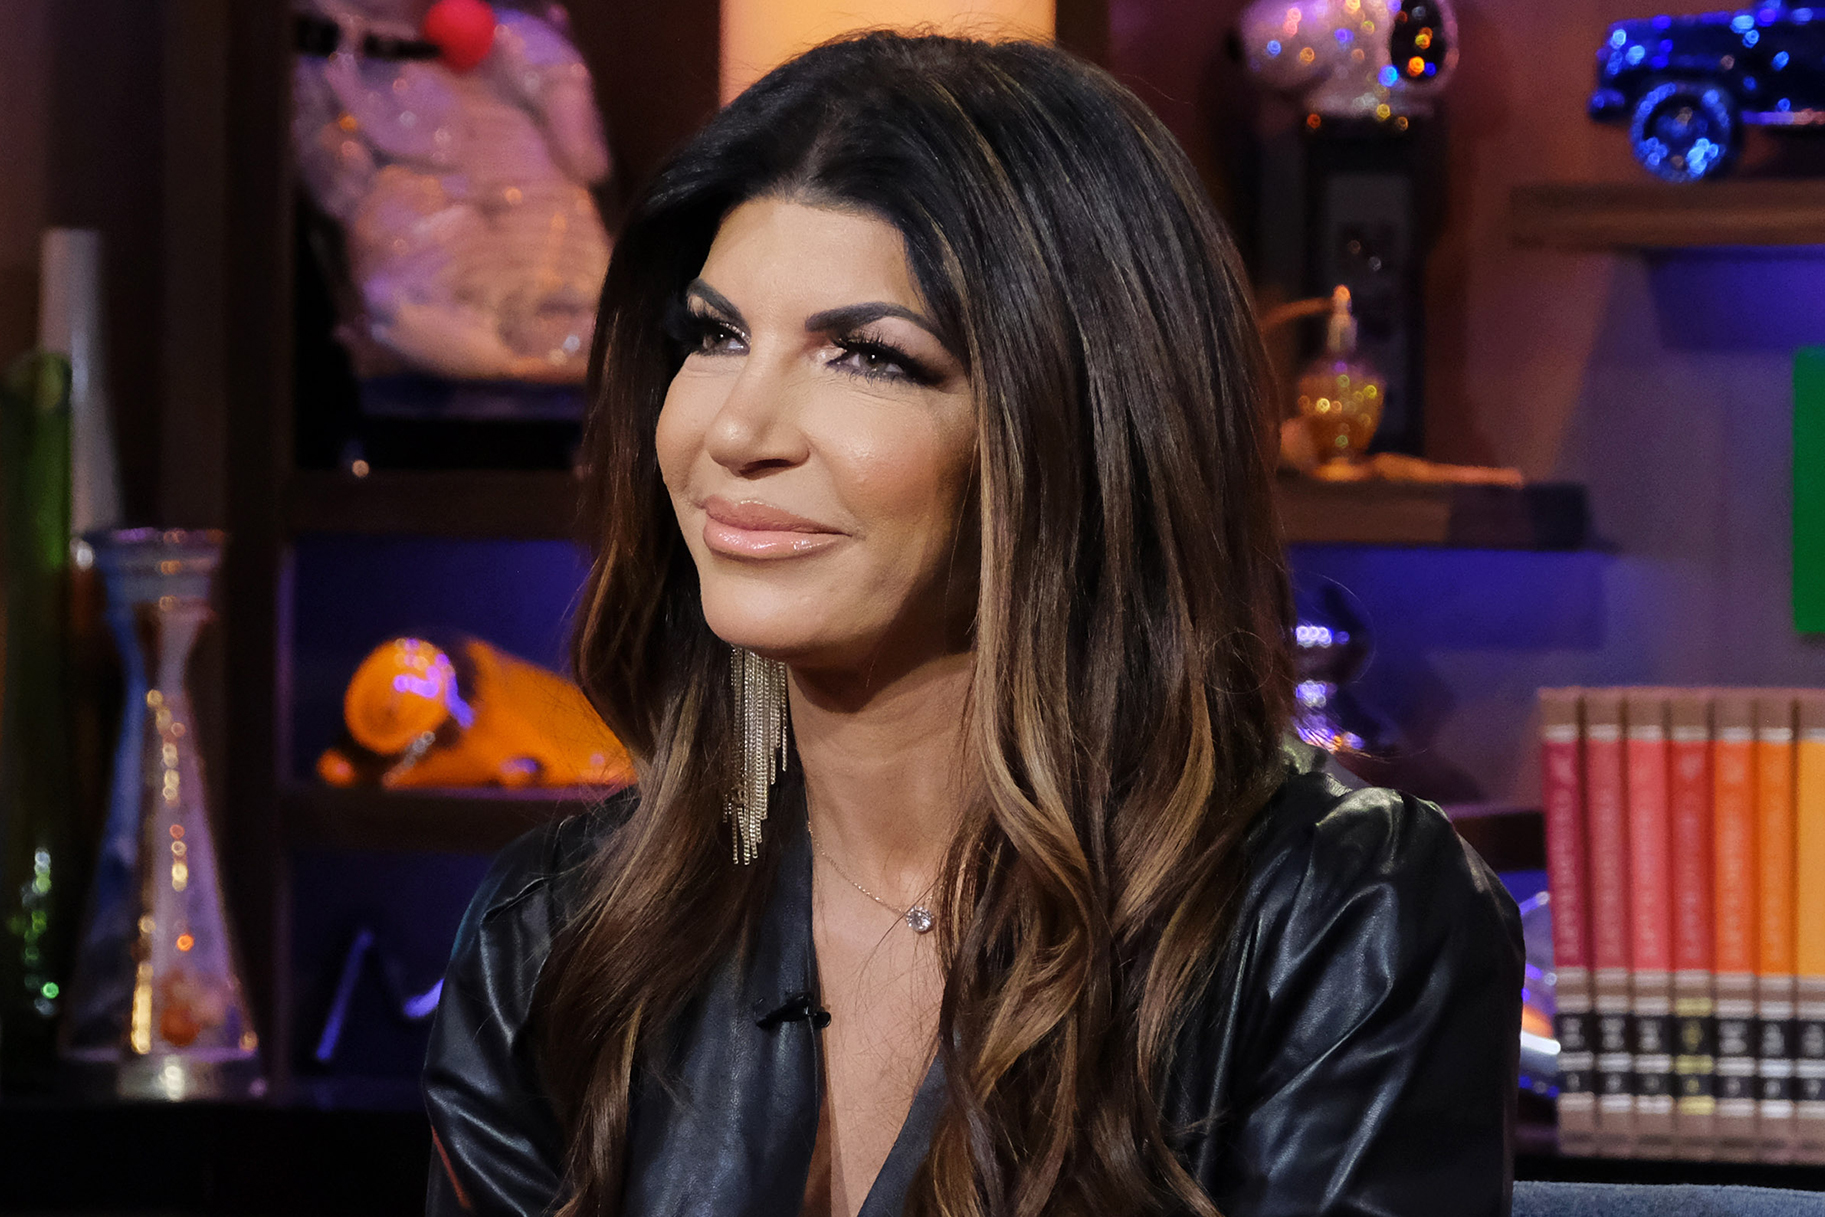 Teresa Giudice Holiday Decorations